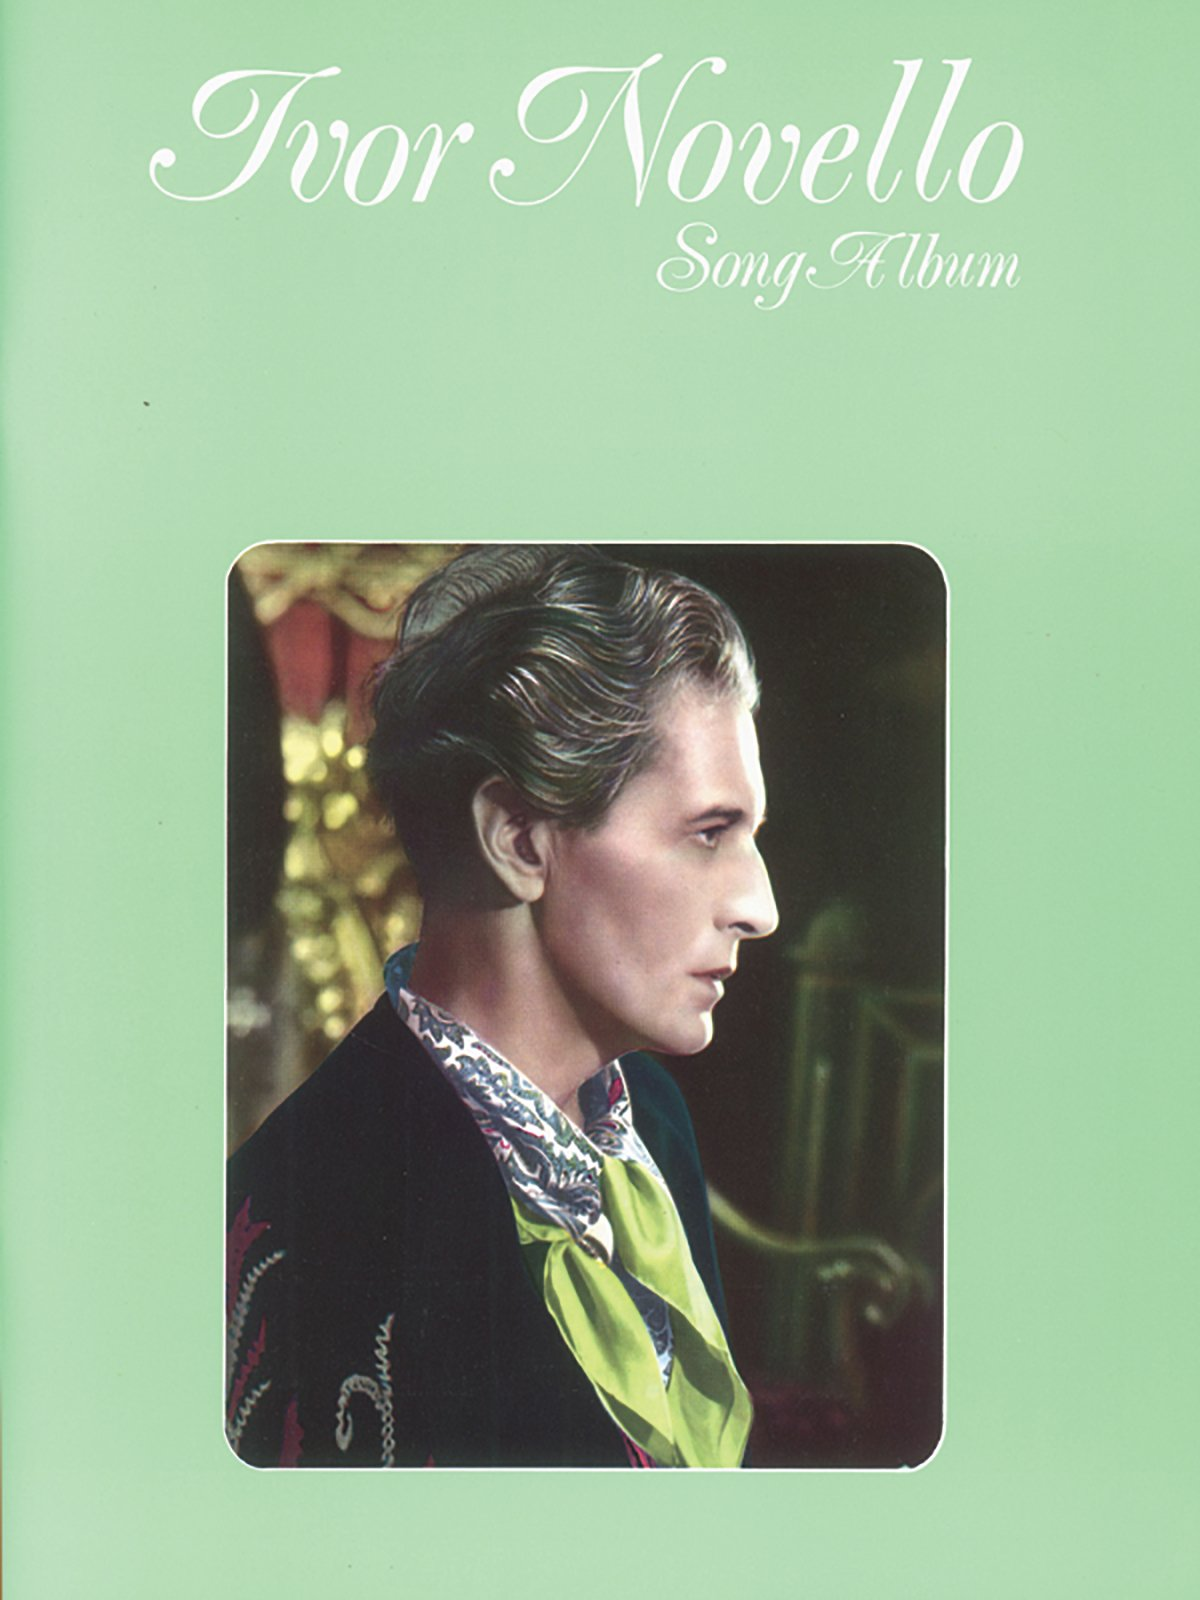 Ivor Novello - Song Album: Piano/Vocal/Guitar Paperback – May 1 1998 Alfred Publishing Co 0571528678 12-0571528678 Printed Music - General